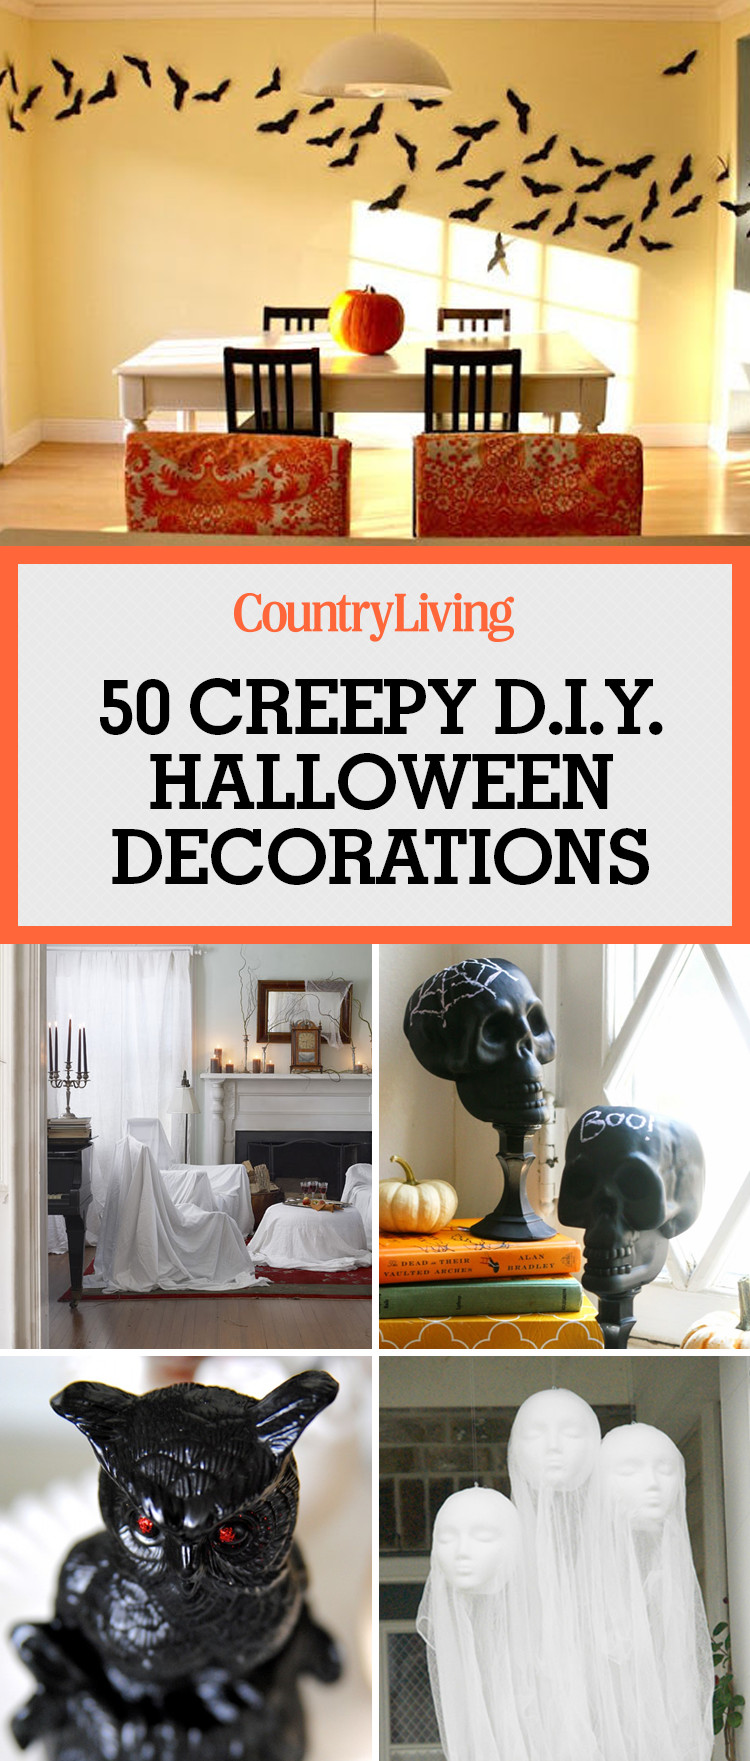 40 easy diy halloween decorations homemade do it Diy halloween party decorations